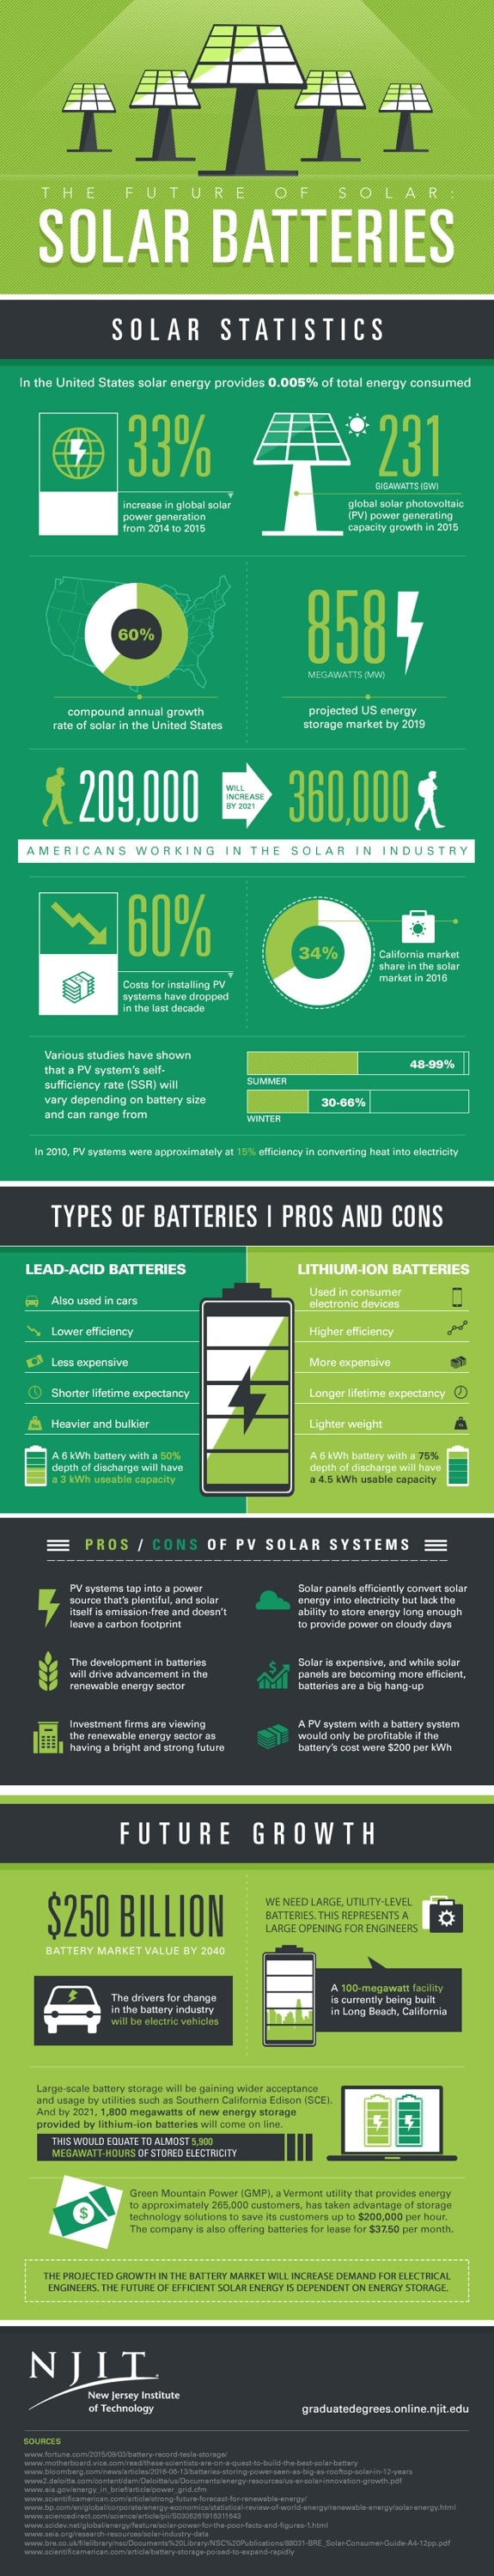 solar batteries infographic